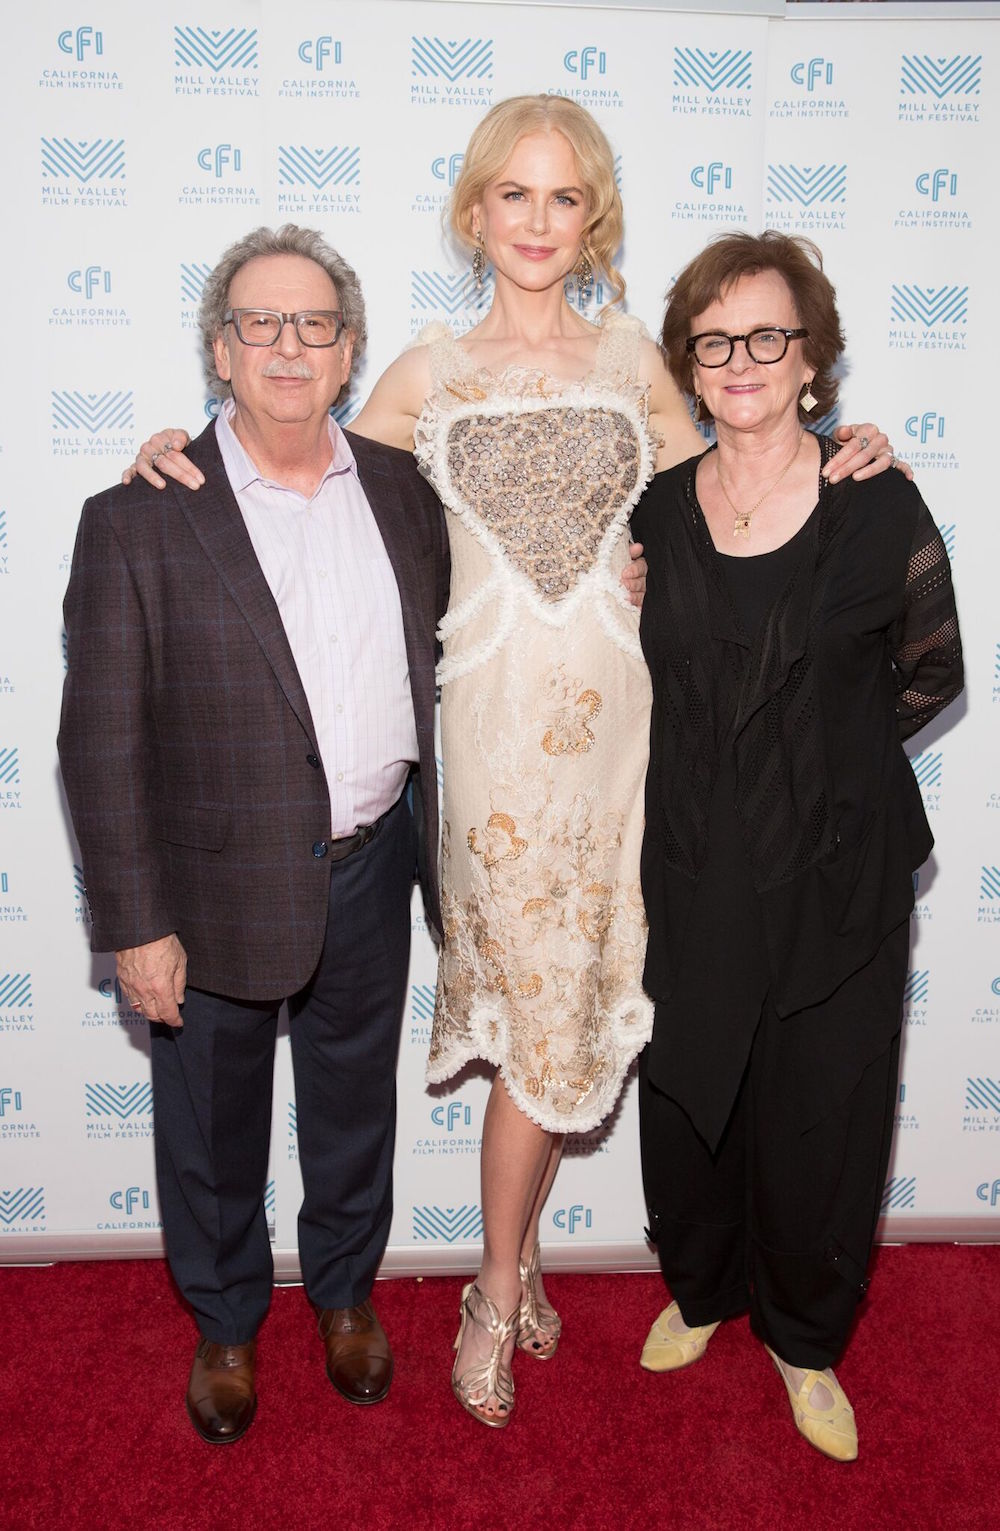 Festival founder Mark Fishkin with Nicole Kidman and Zoë Elton in 2016